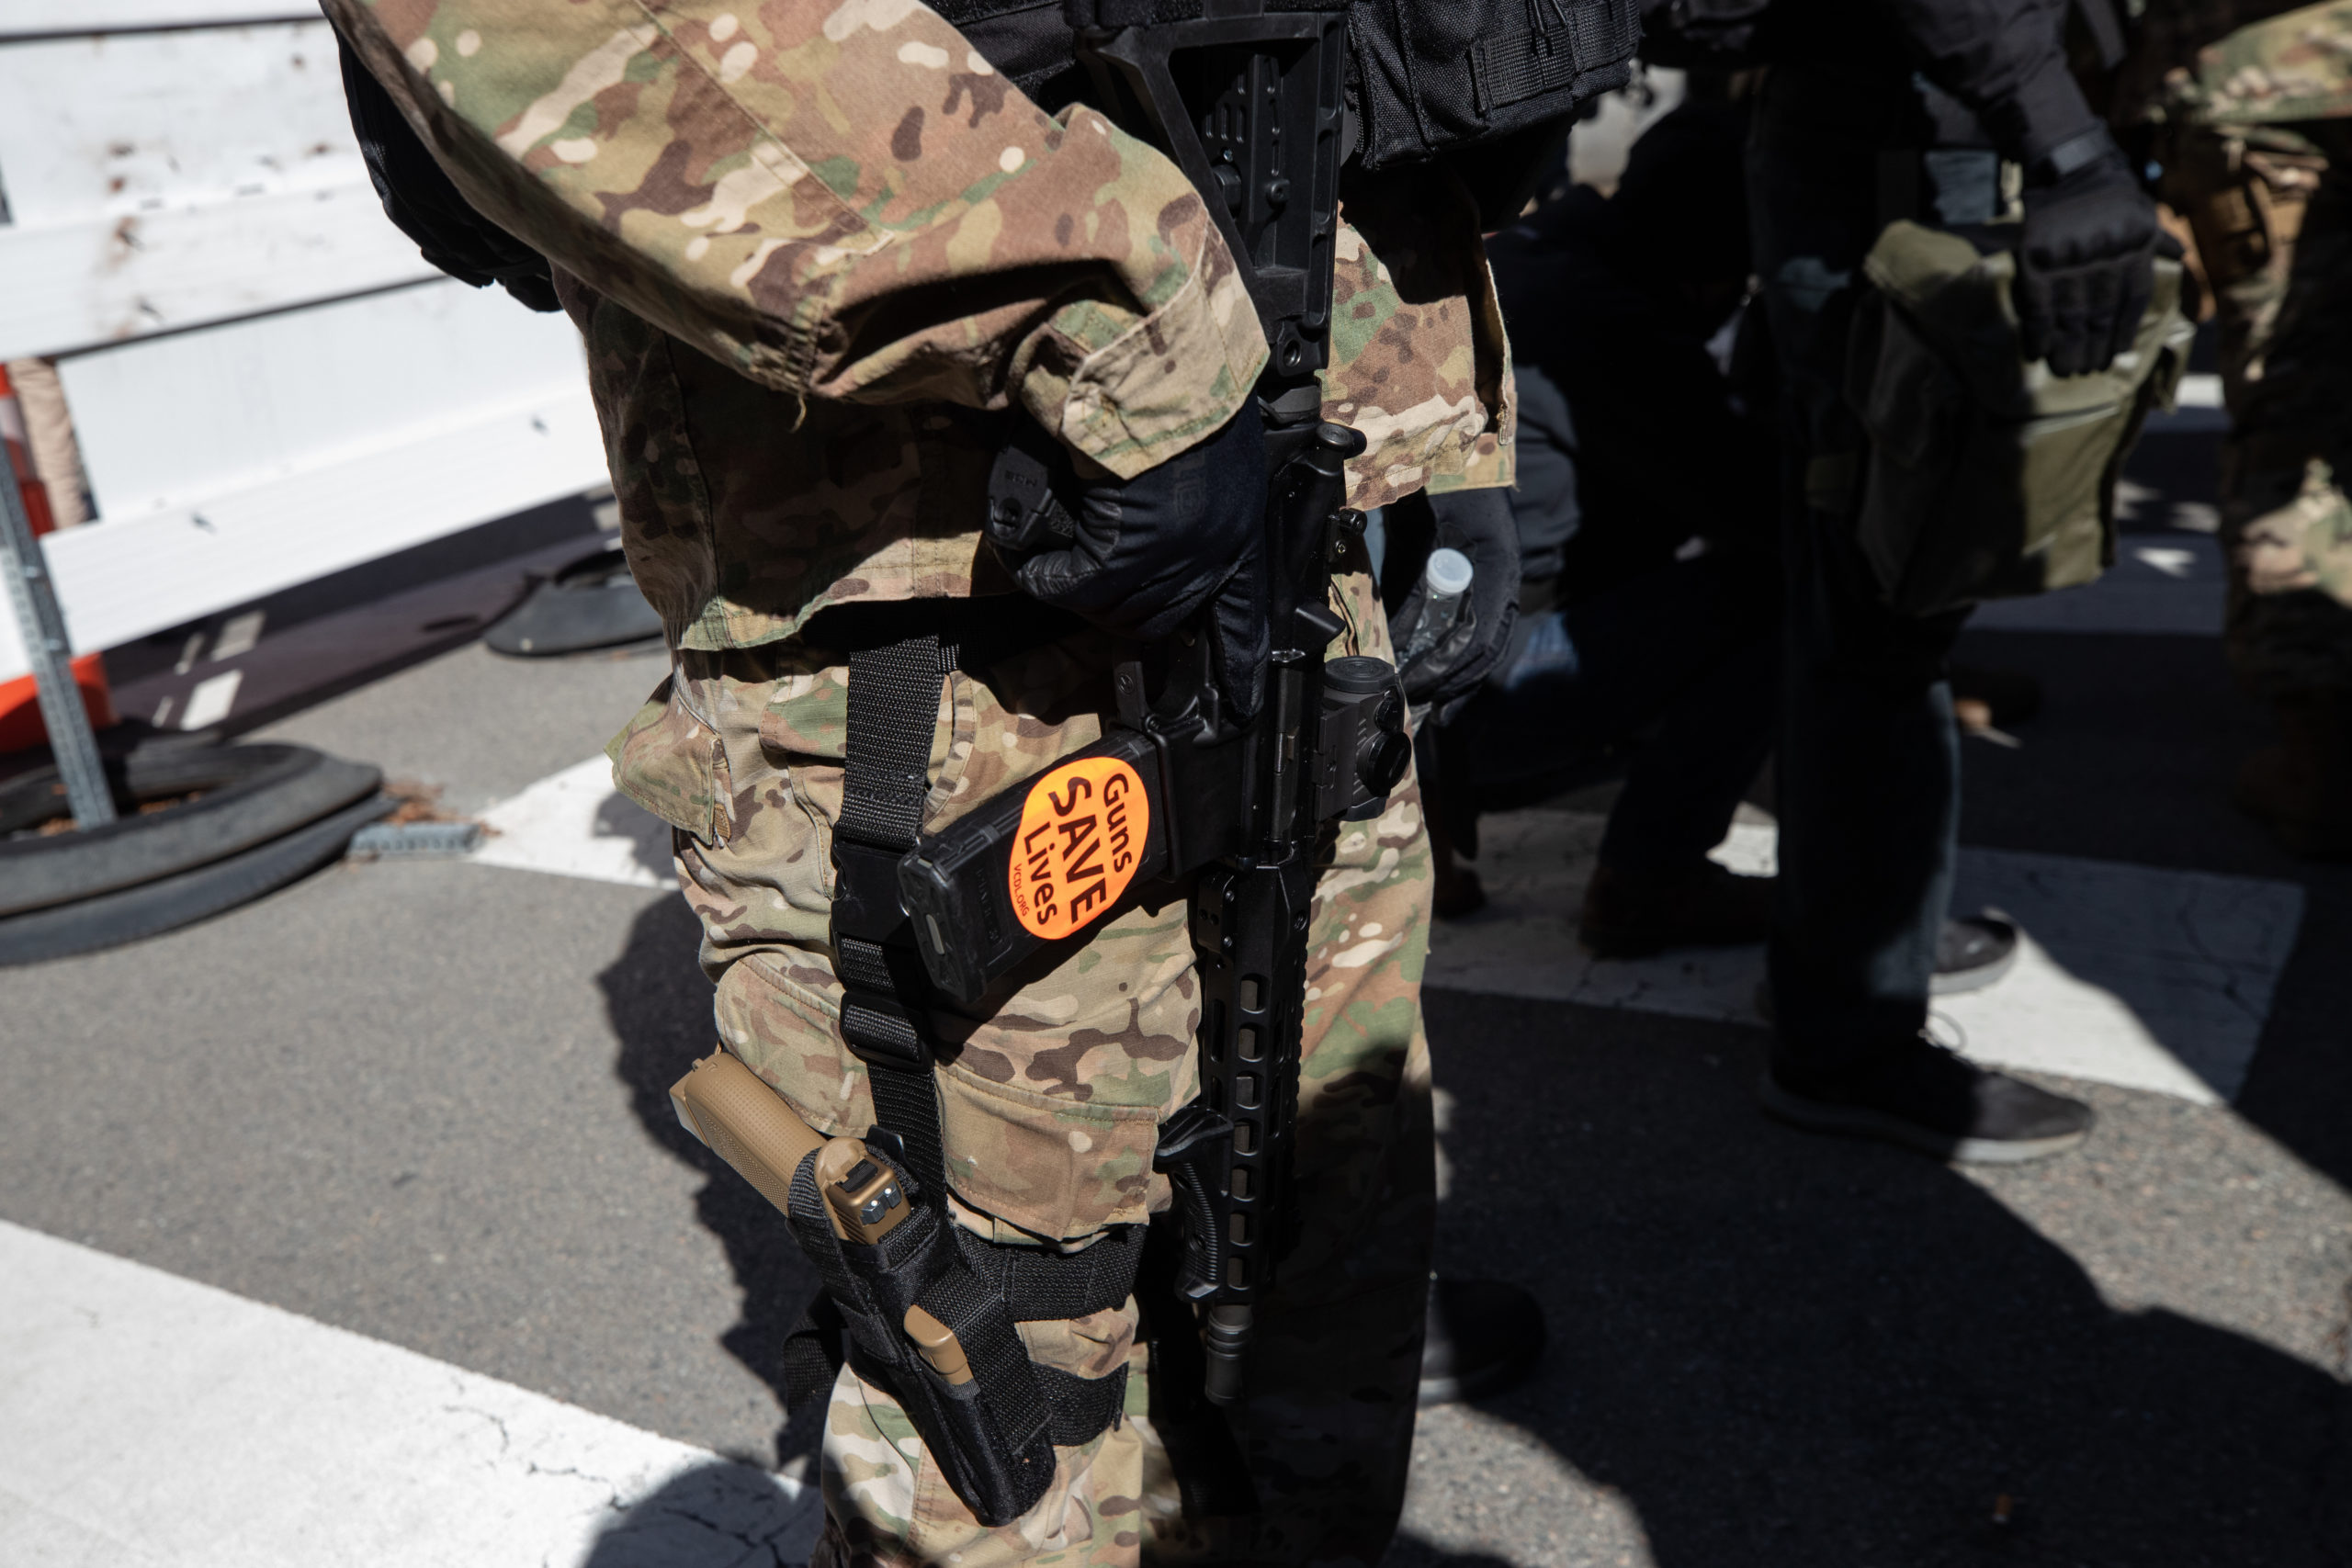 """An armed demonstrator held a rifle with a """"guns save lives"""" sticker on the magazine during Lobby Day demonstrations in Richmond, Virginia on January 18, 2021. (Kaylee Greenlee - Daily Caller News Foundation)"""